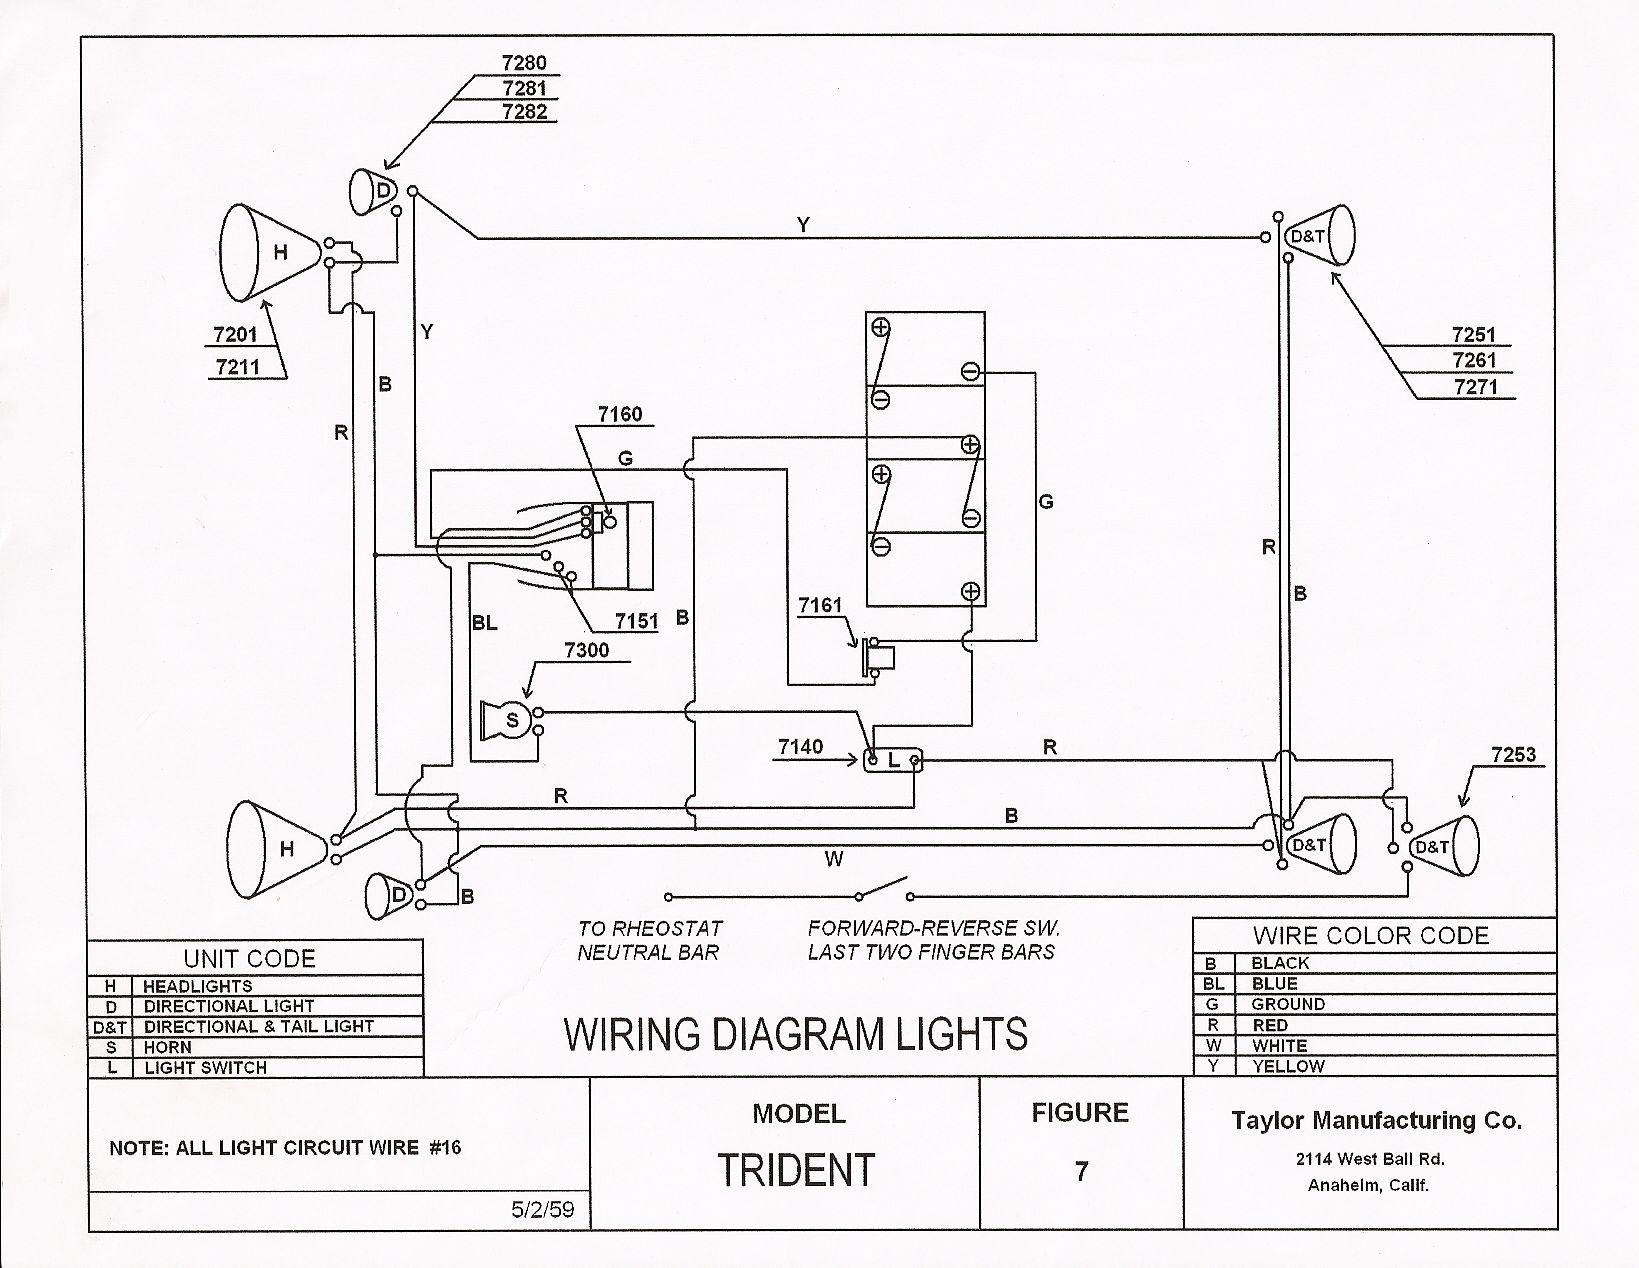 trident01 vintagegolfcartparts com 3-Way Switch Wiring Diagram for Switch To at gsmportal.co